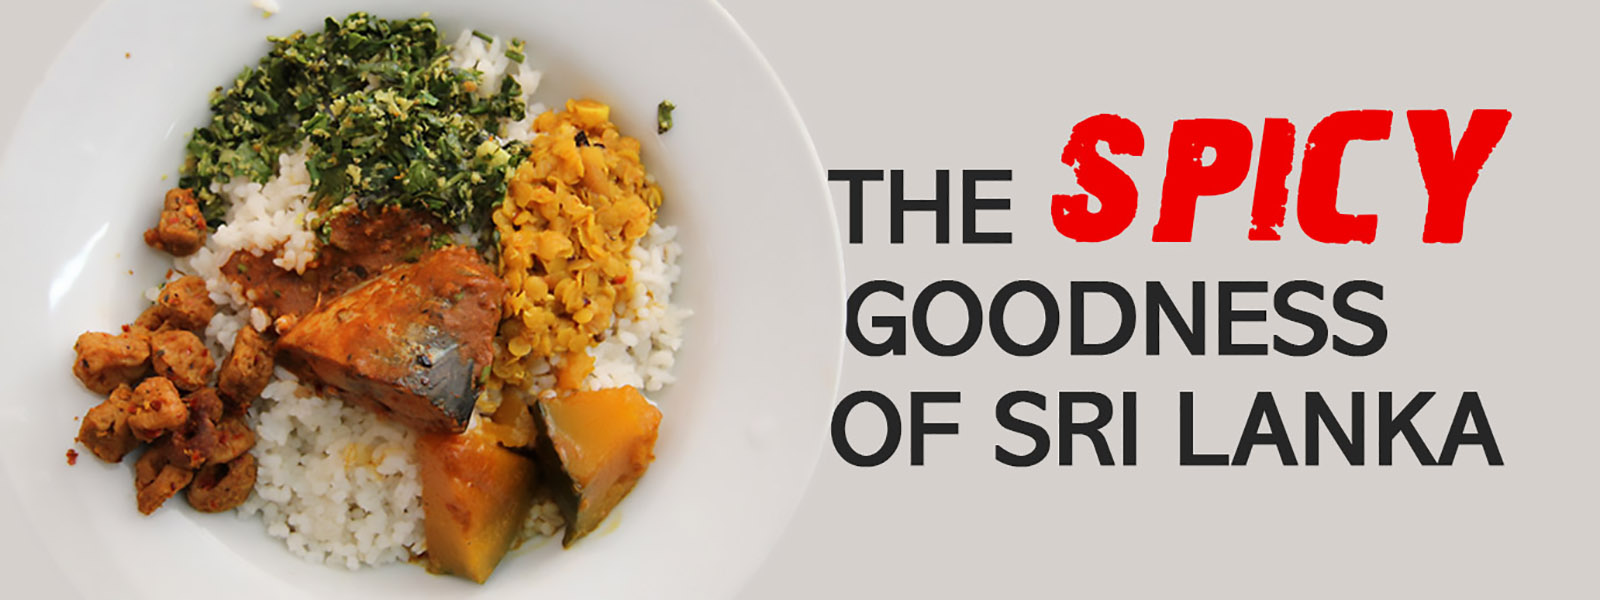 The Spicy Goodness of Sri Lanka!